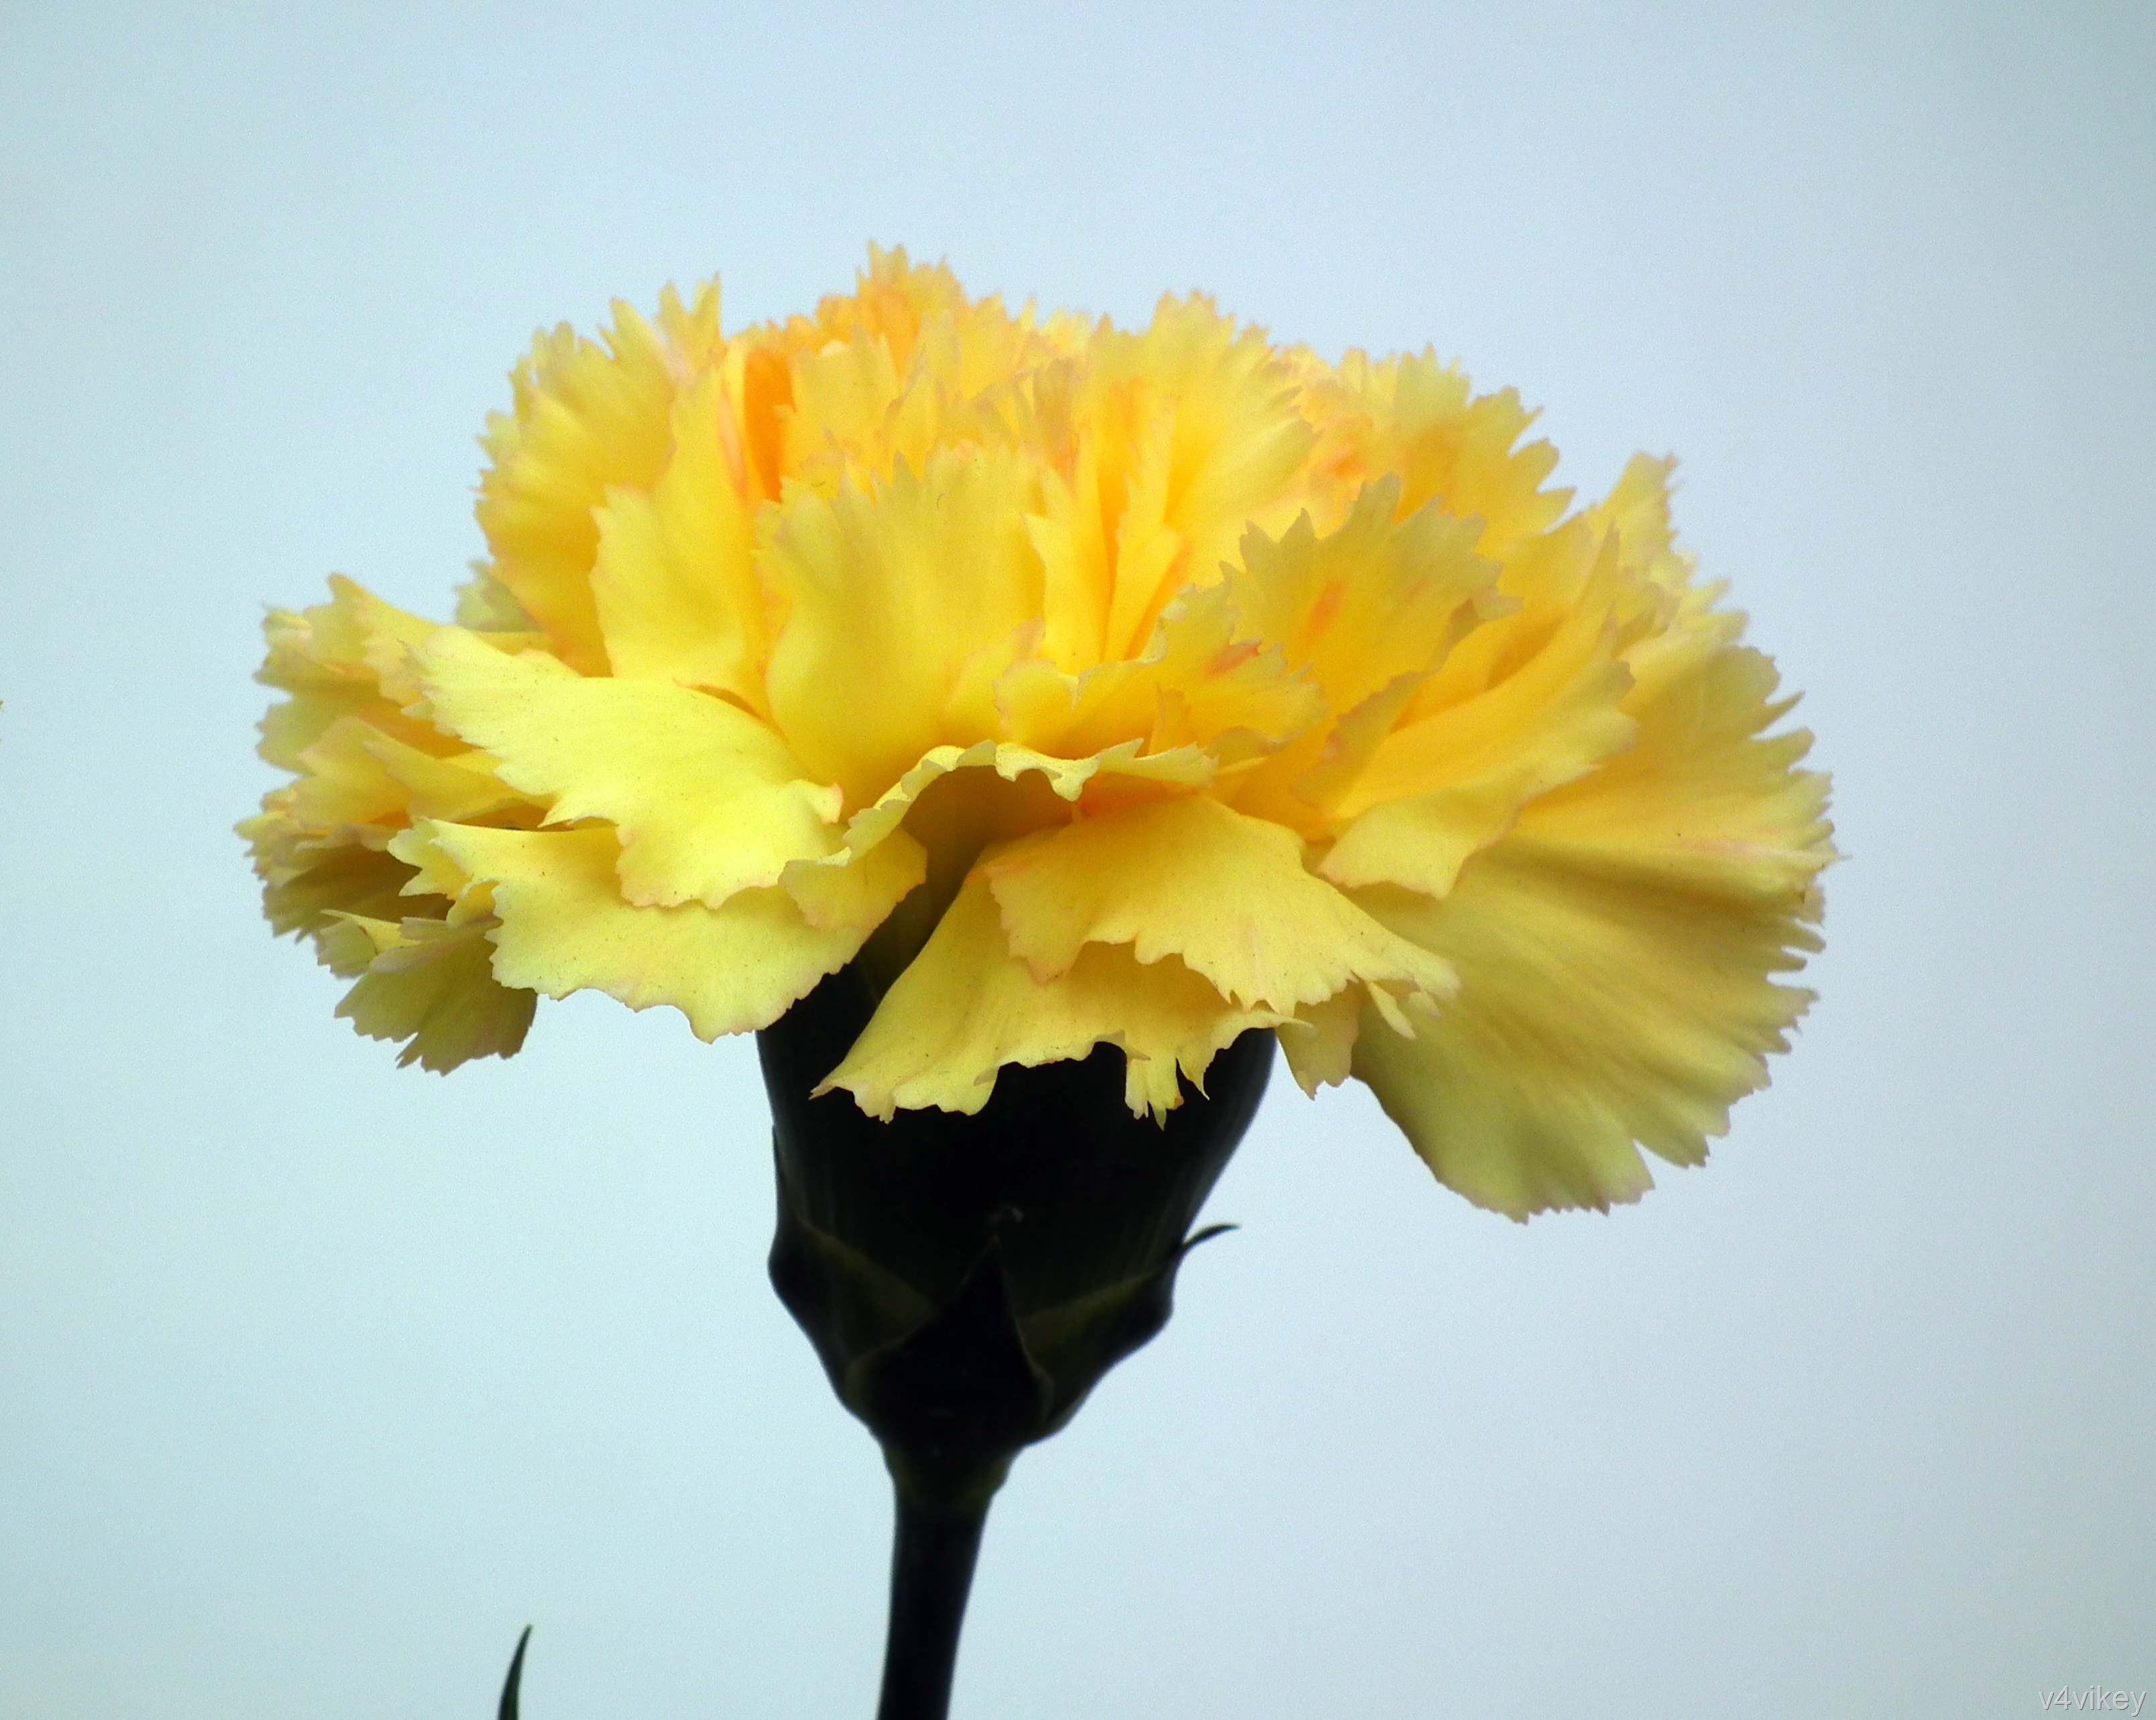 Meaning of yellow carnation flower wallpaper tadka yellow carnation flower mightylinksfo